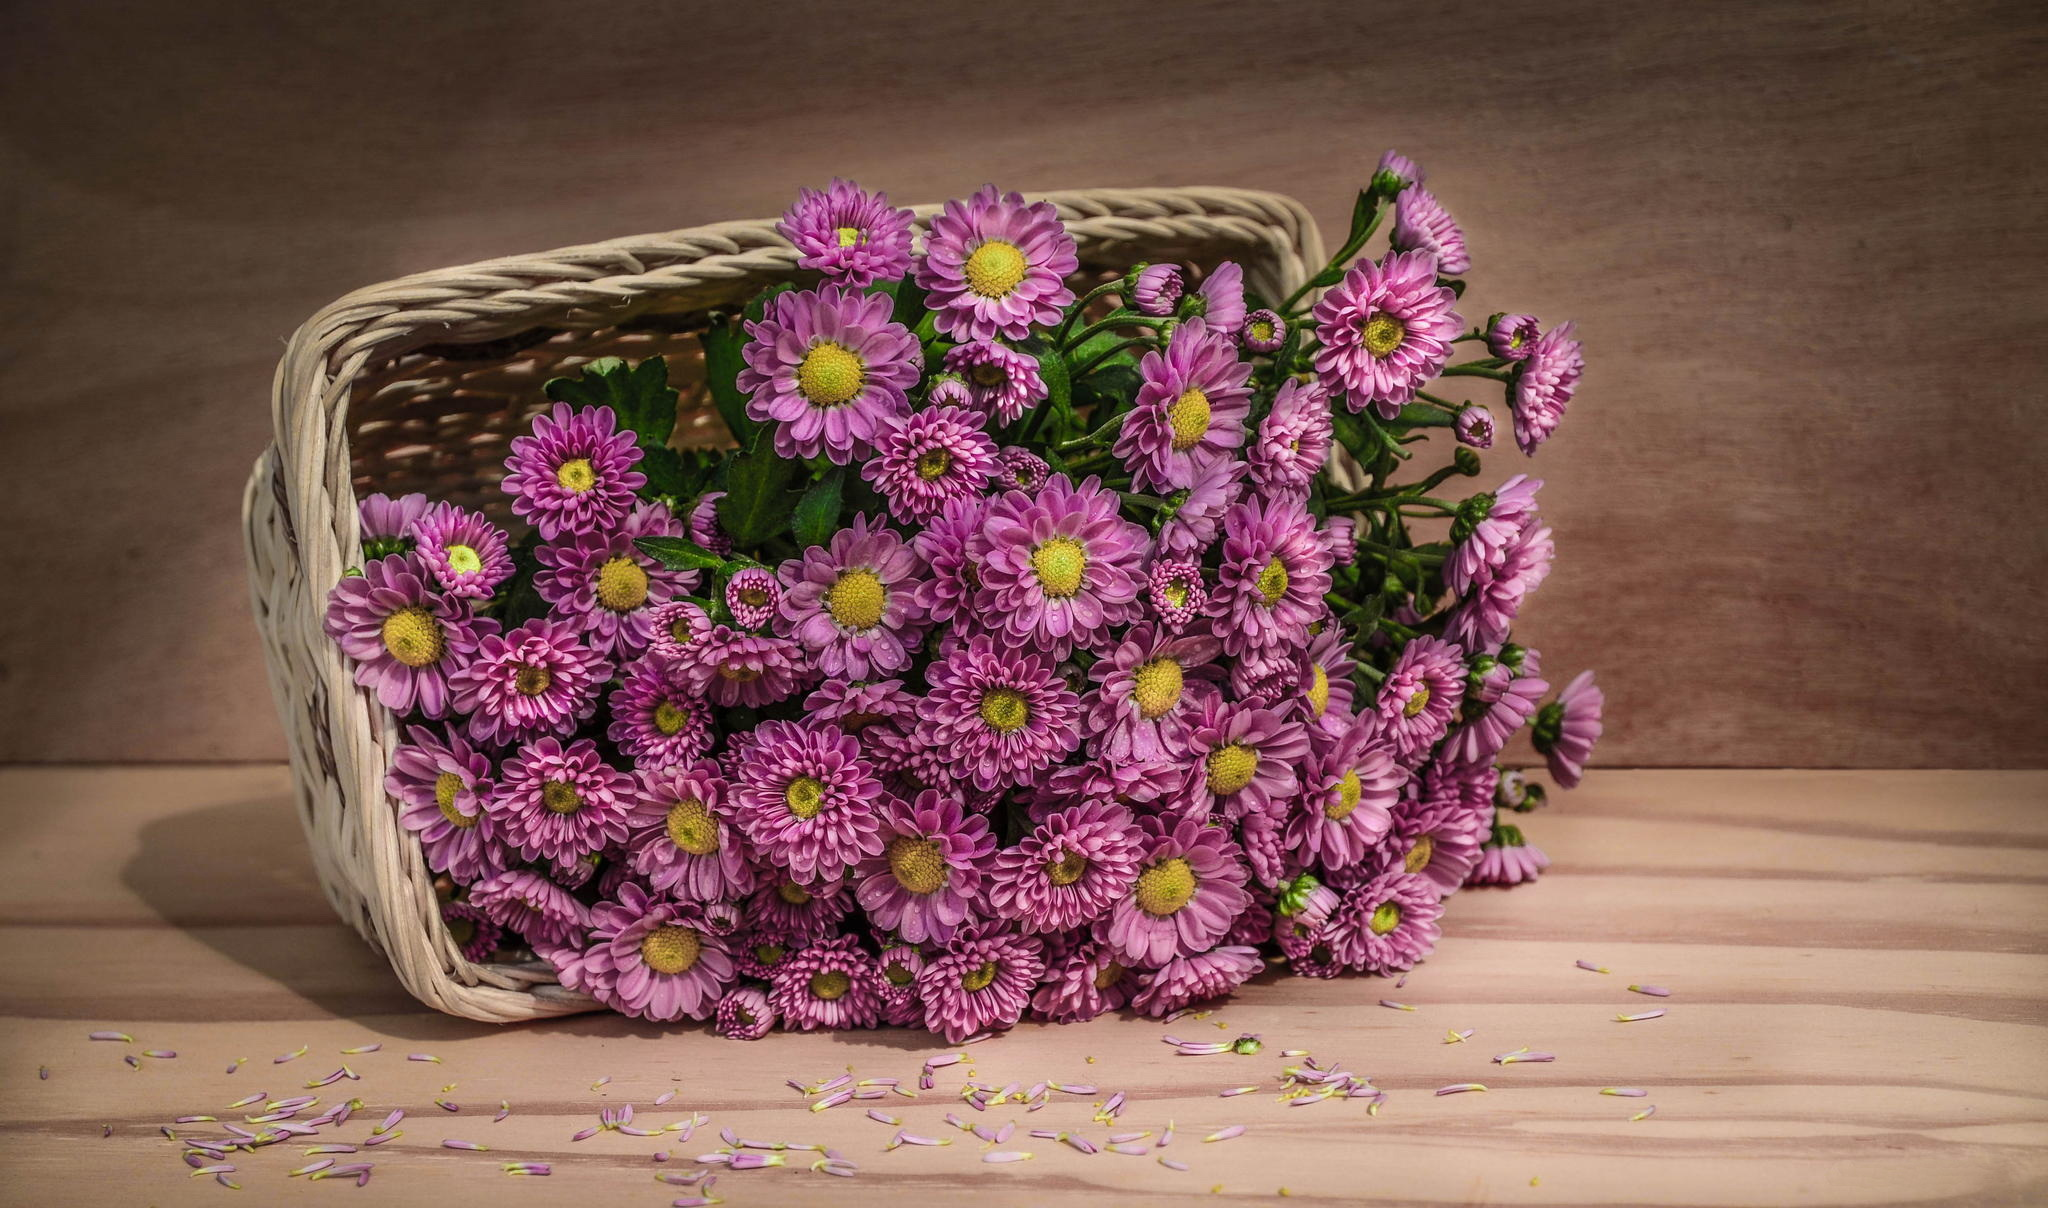 100174 free wallpaper 1440x2560 for phone, download images Flowers, Petals, Basket 1440x2560 for mobile